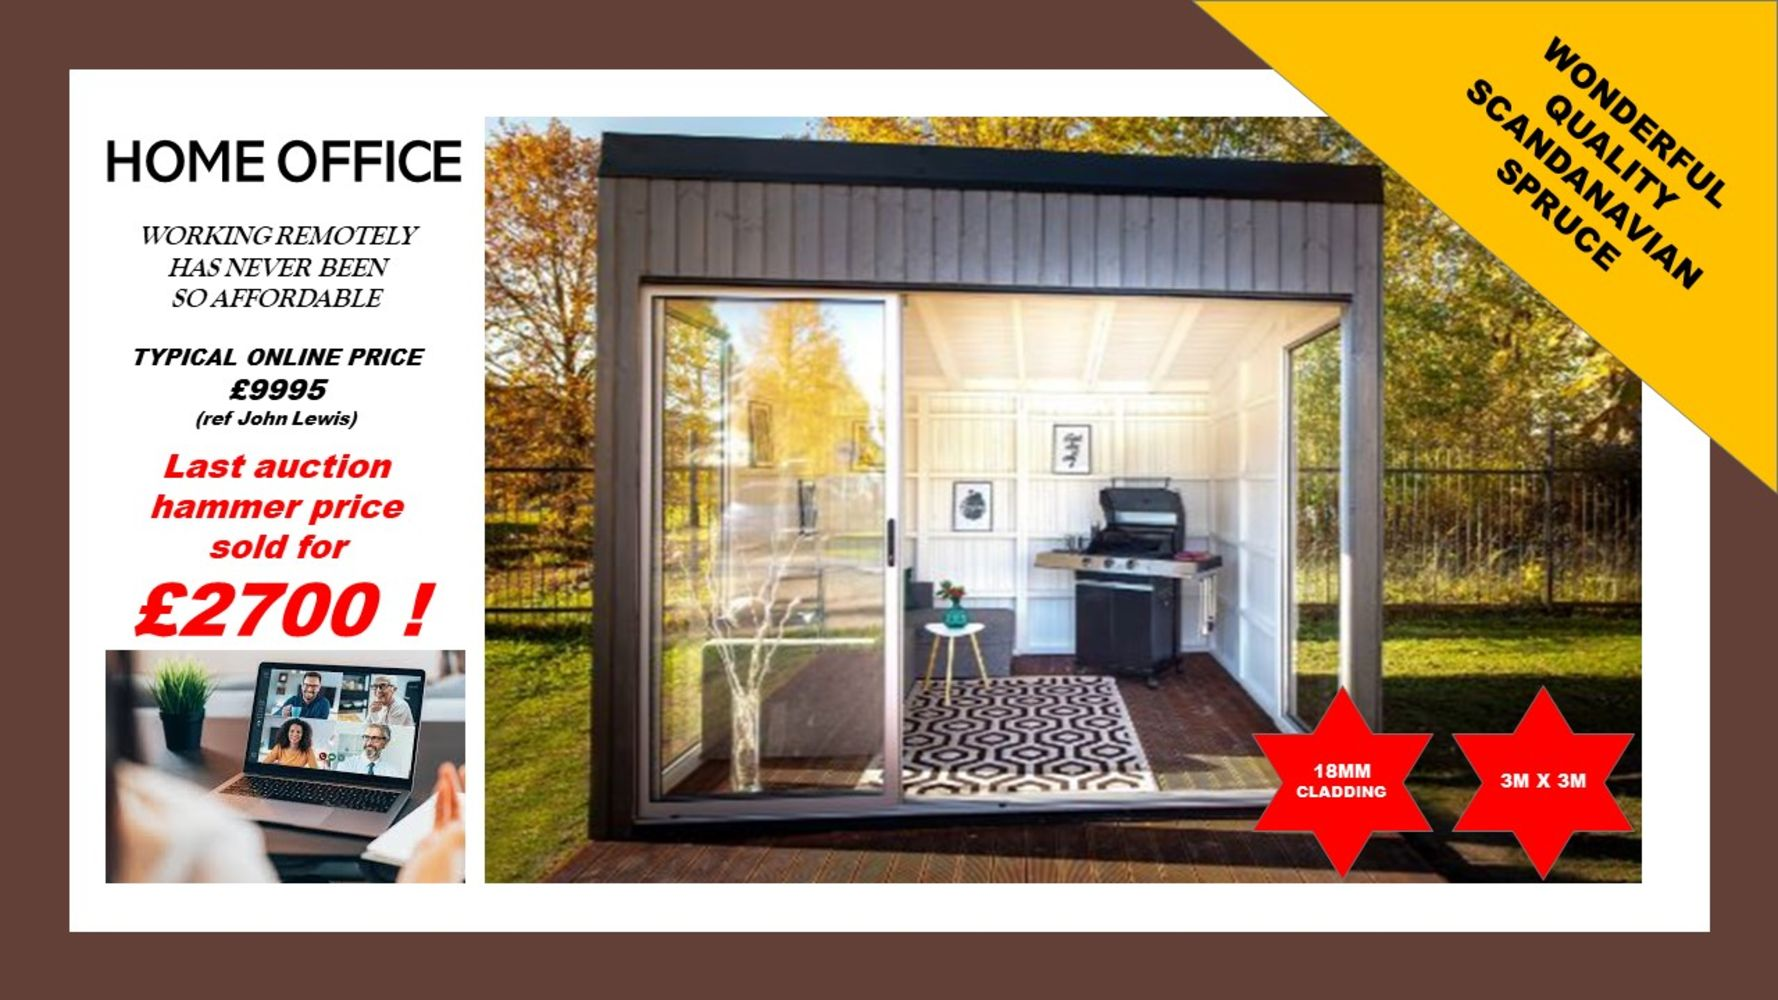 HOME OFFICE BUILDINGS - ** Superb Quality Scandinavian Spruce Buildings At Unbeatable Prices**